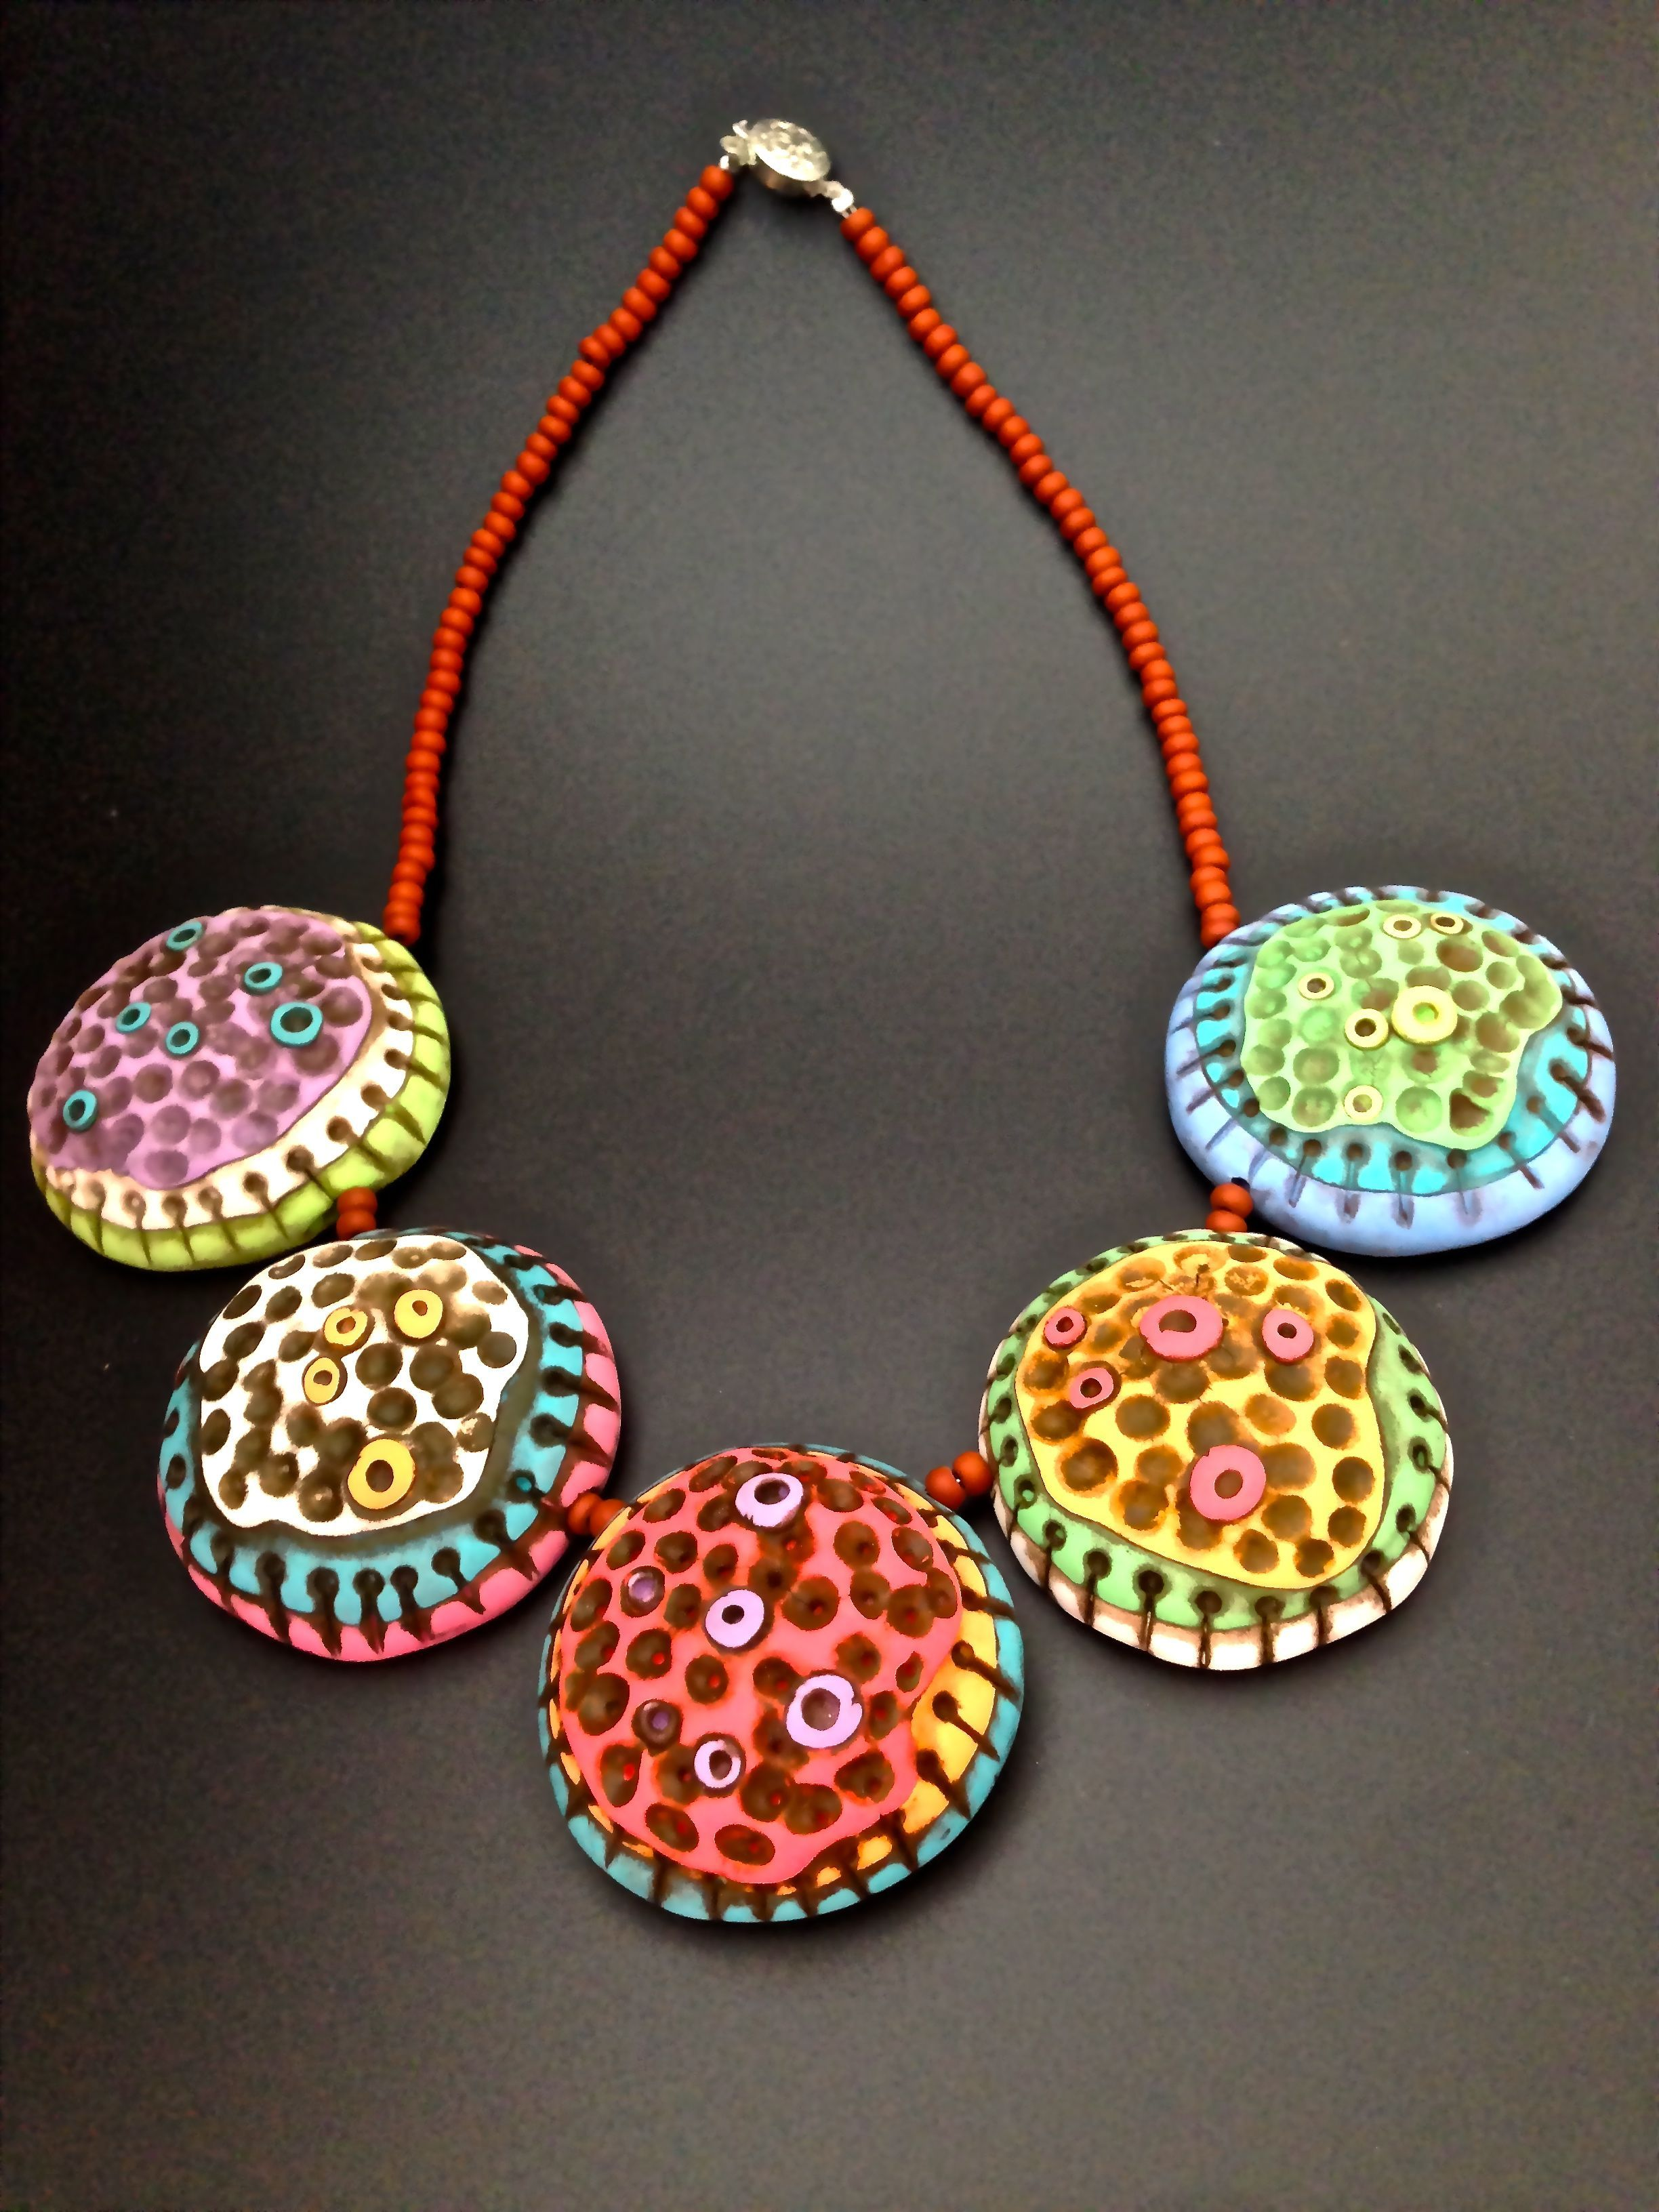 Pluffy Color Dandelion Necklace - awesome necklace on Polyform's website....Made by Natalia Garcia de Leaniz.  Beautiful!  Thanks to @Jackie Godbold Godbold Godbold Watts for letting me know about it!